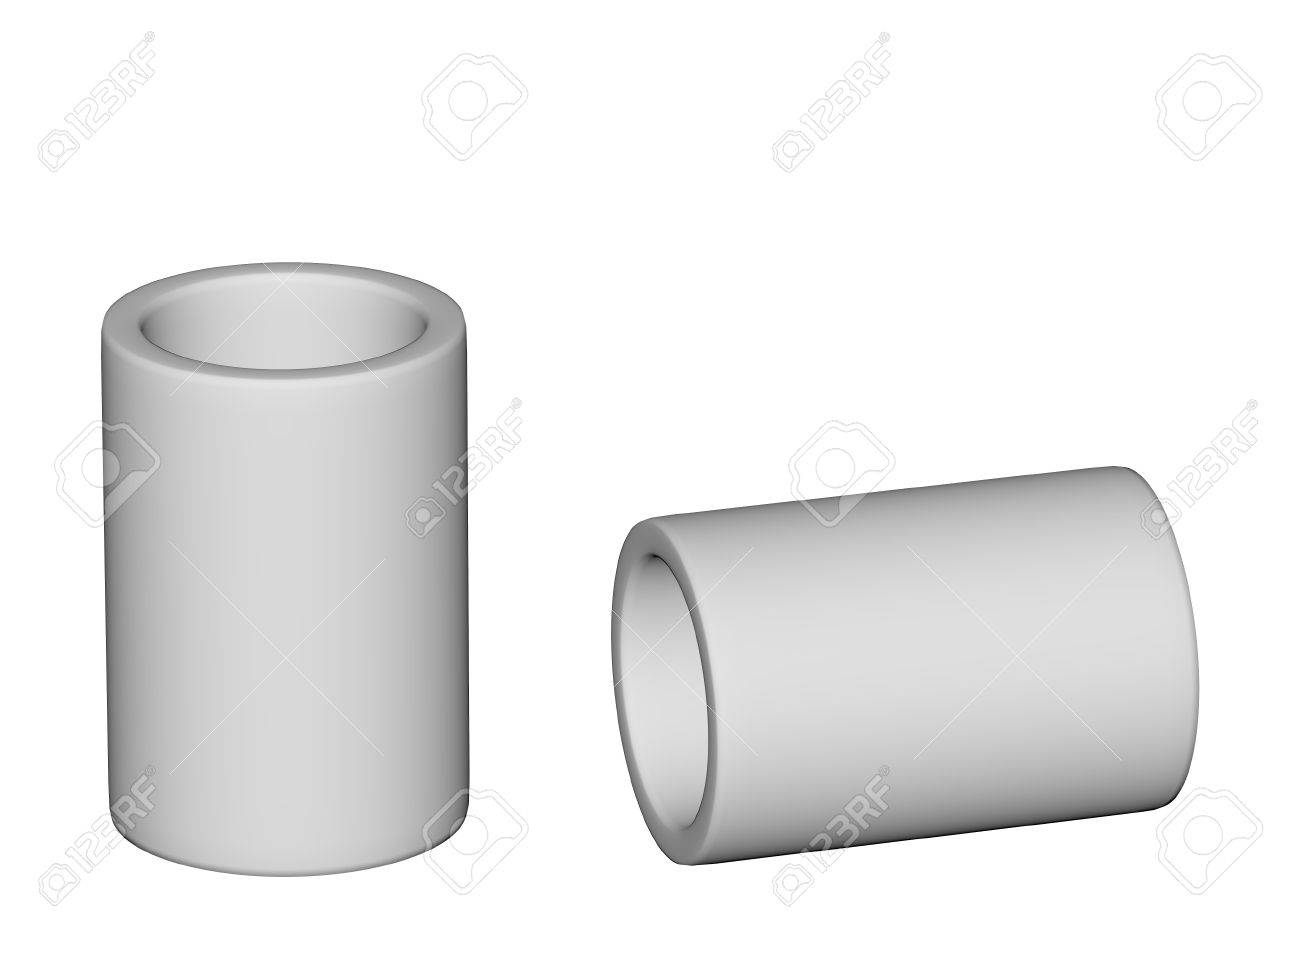 Fitting - PVC connection coupler isolated on white background Used to install plumbing and heating pipes made of polypropylene 3d Stock Photo - 13784195